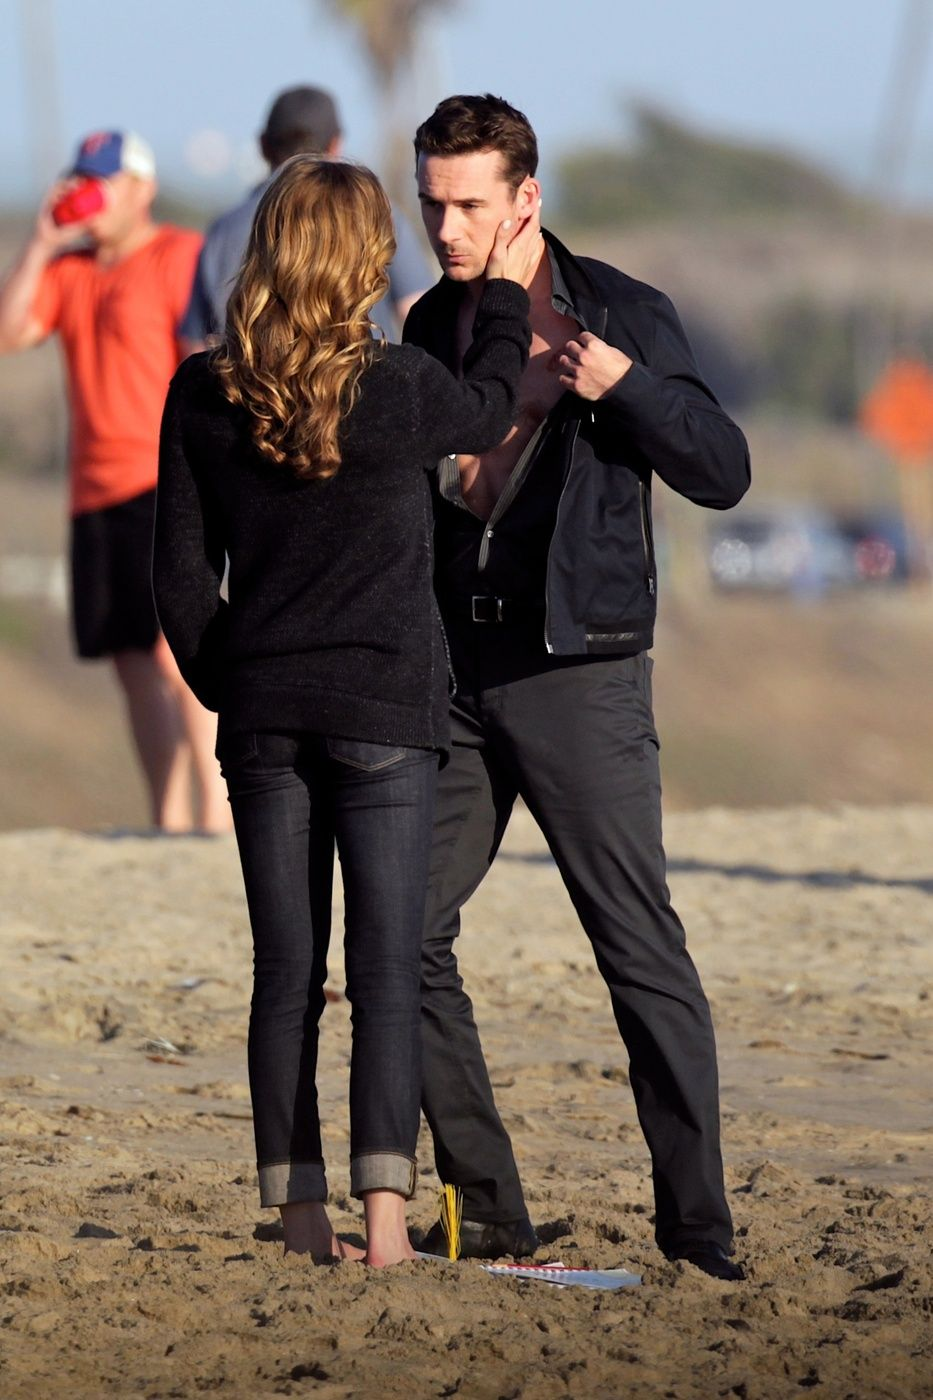 Remarkable, rather Emily vancamp beach topic